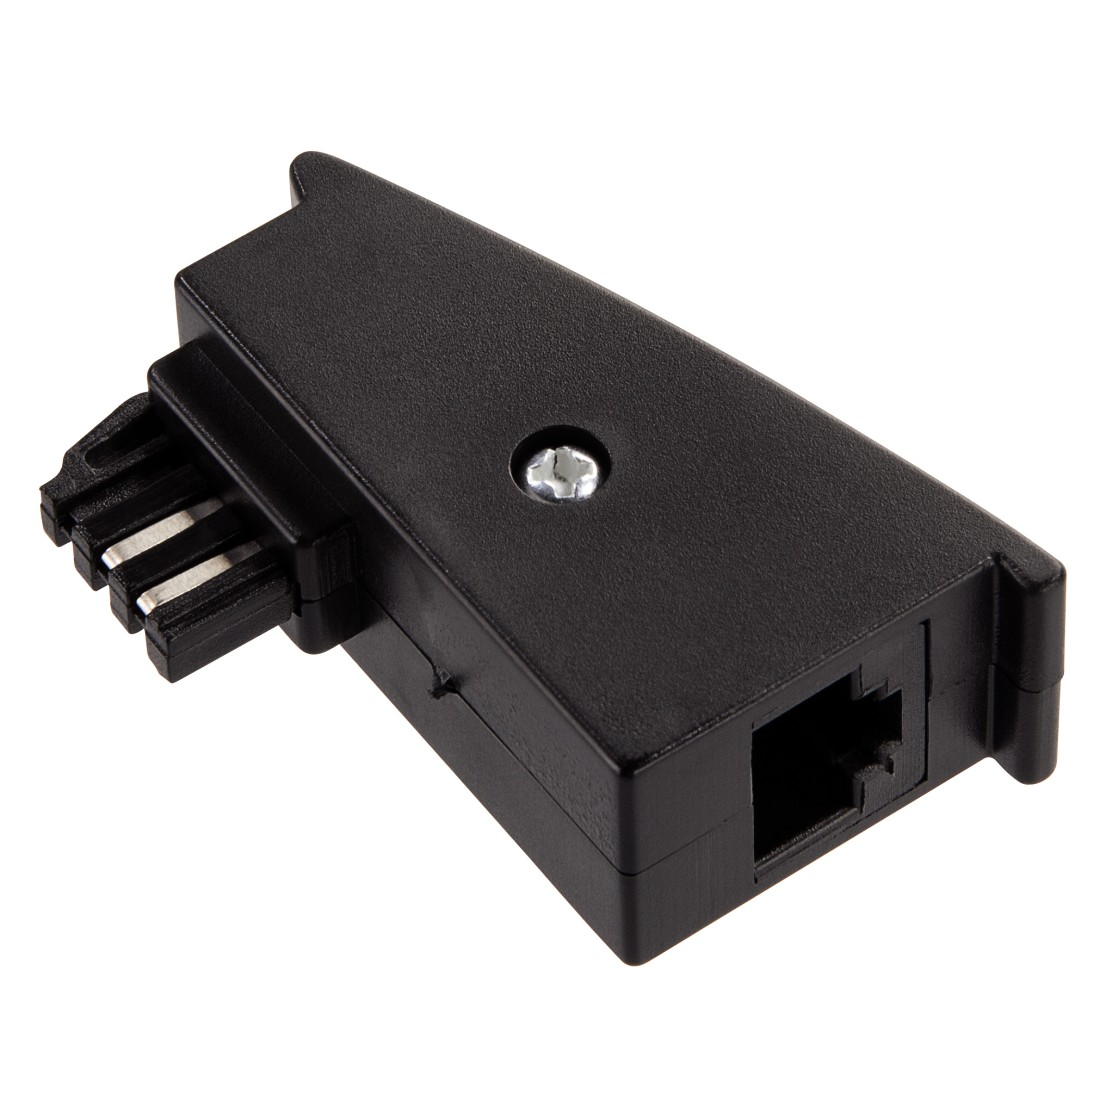 abx High-Res Image - Hama, Adapter for Fritzbox Cables, TAE-F plug - modular socket 8p2c